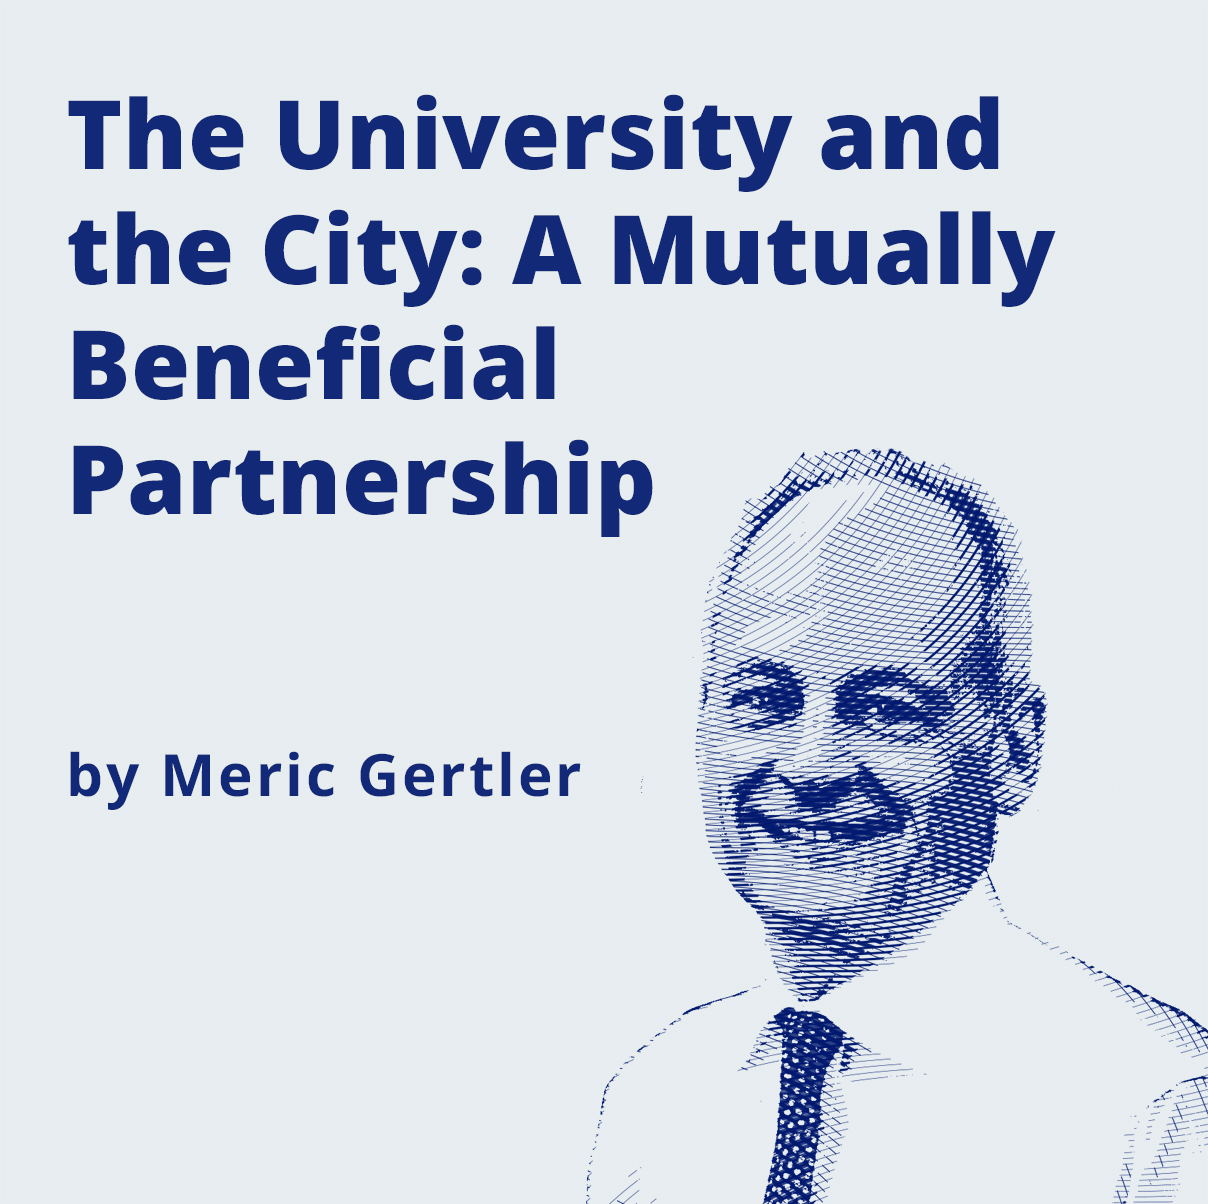 image - The University and the City: A Symbiotic Partnership by Meric Gertler